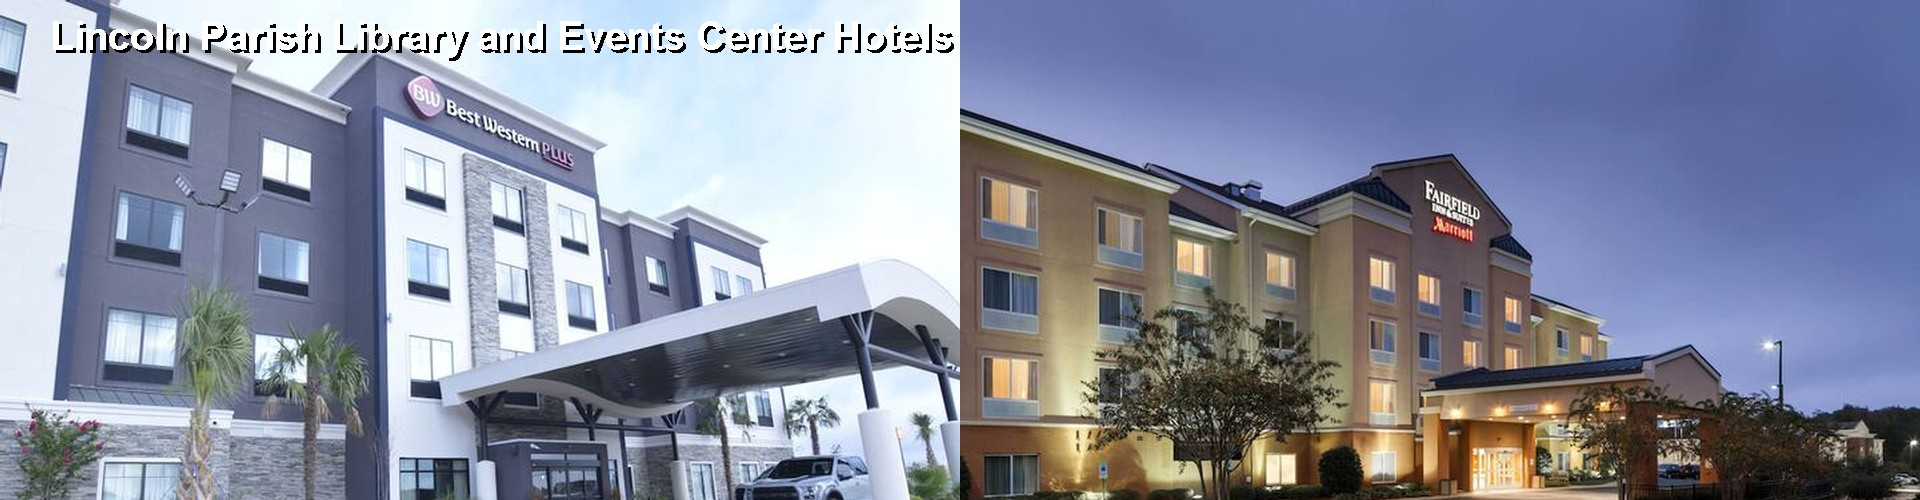 5 Best Hotels near Lincoln Parish Library and Events Center